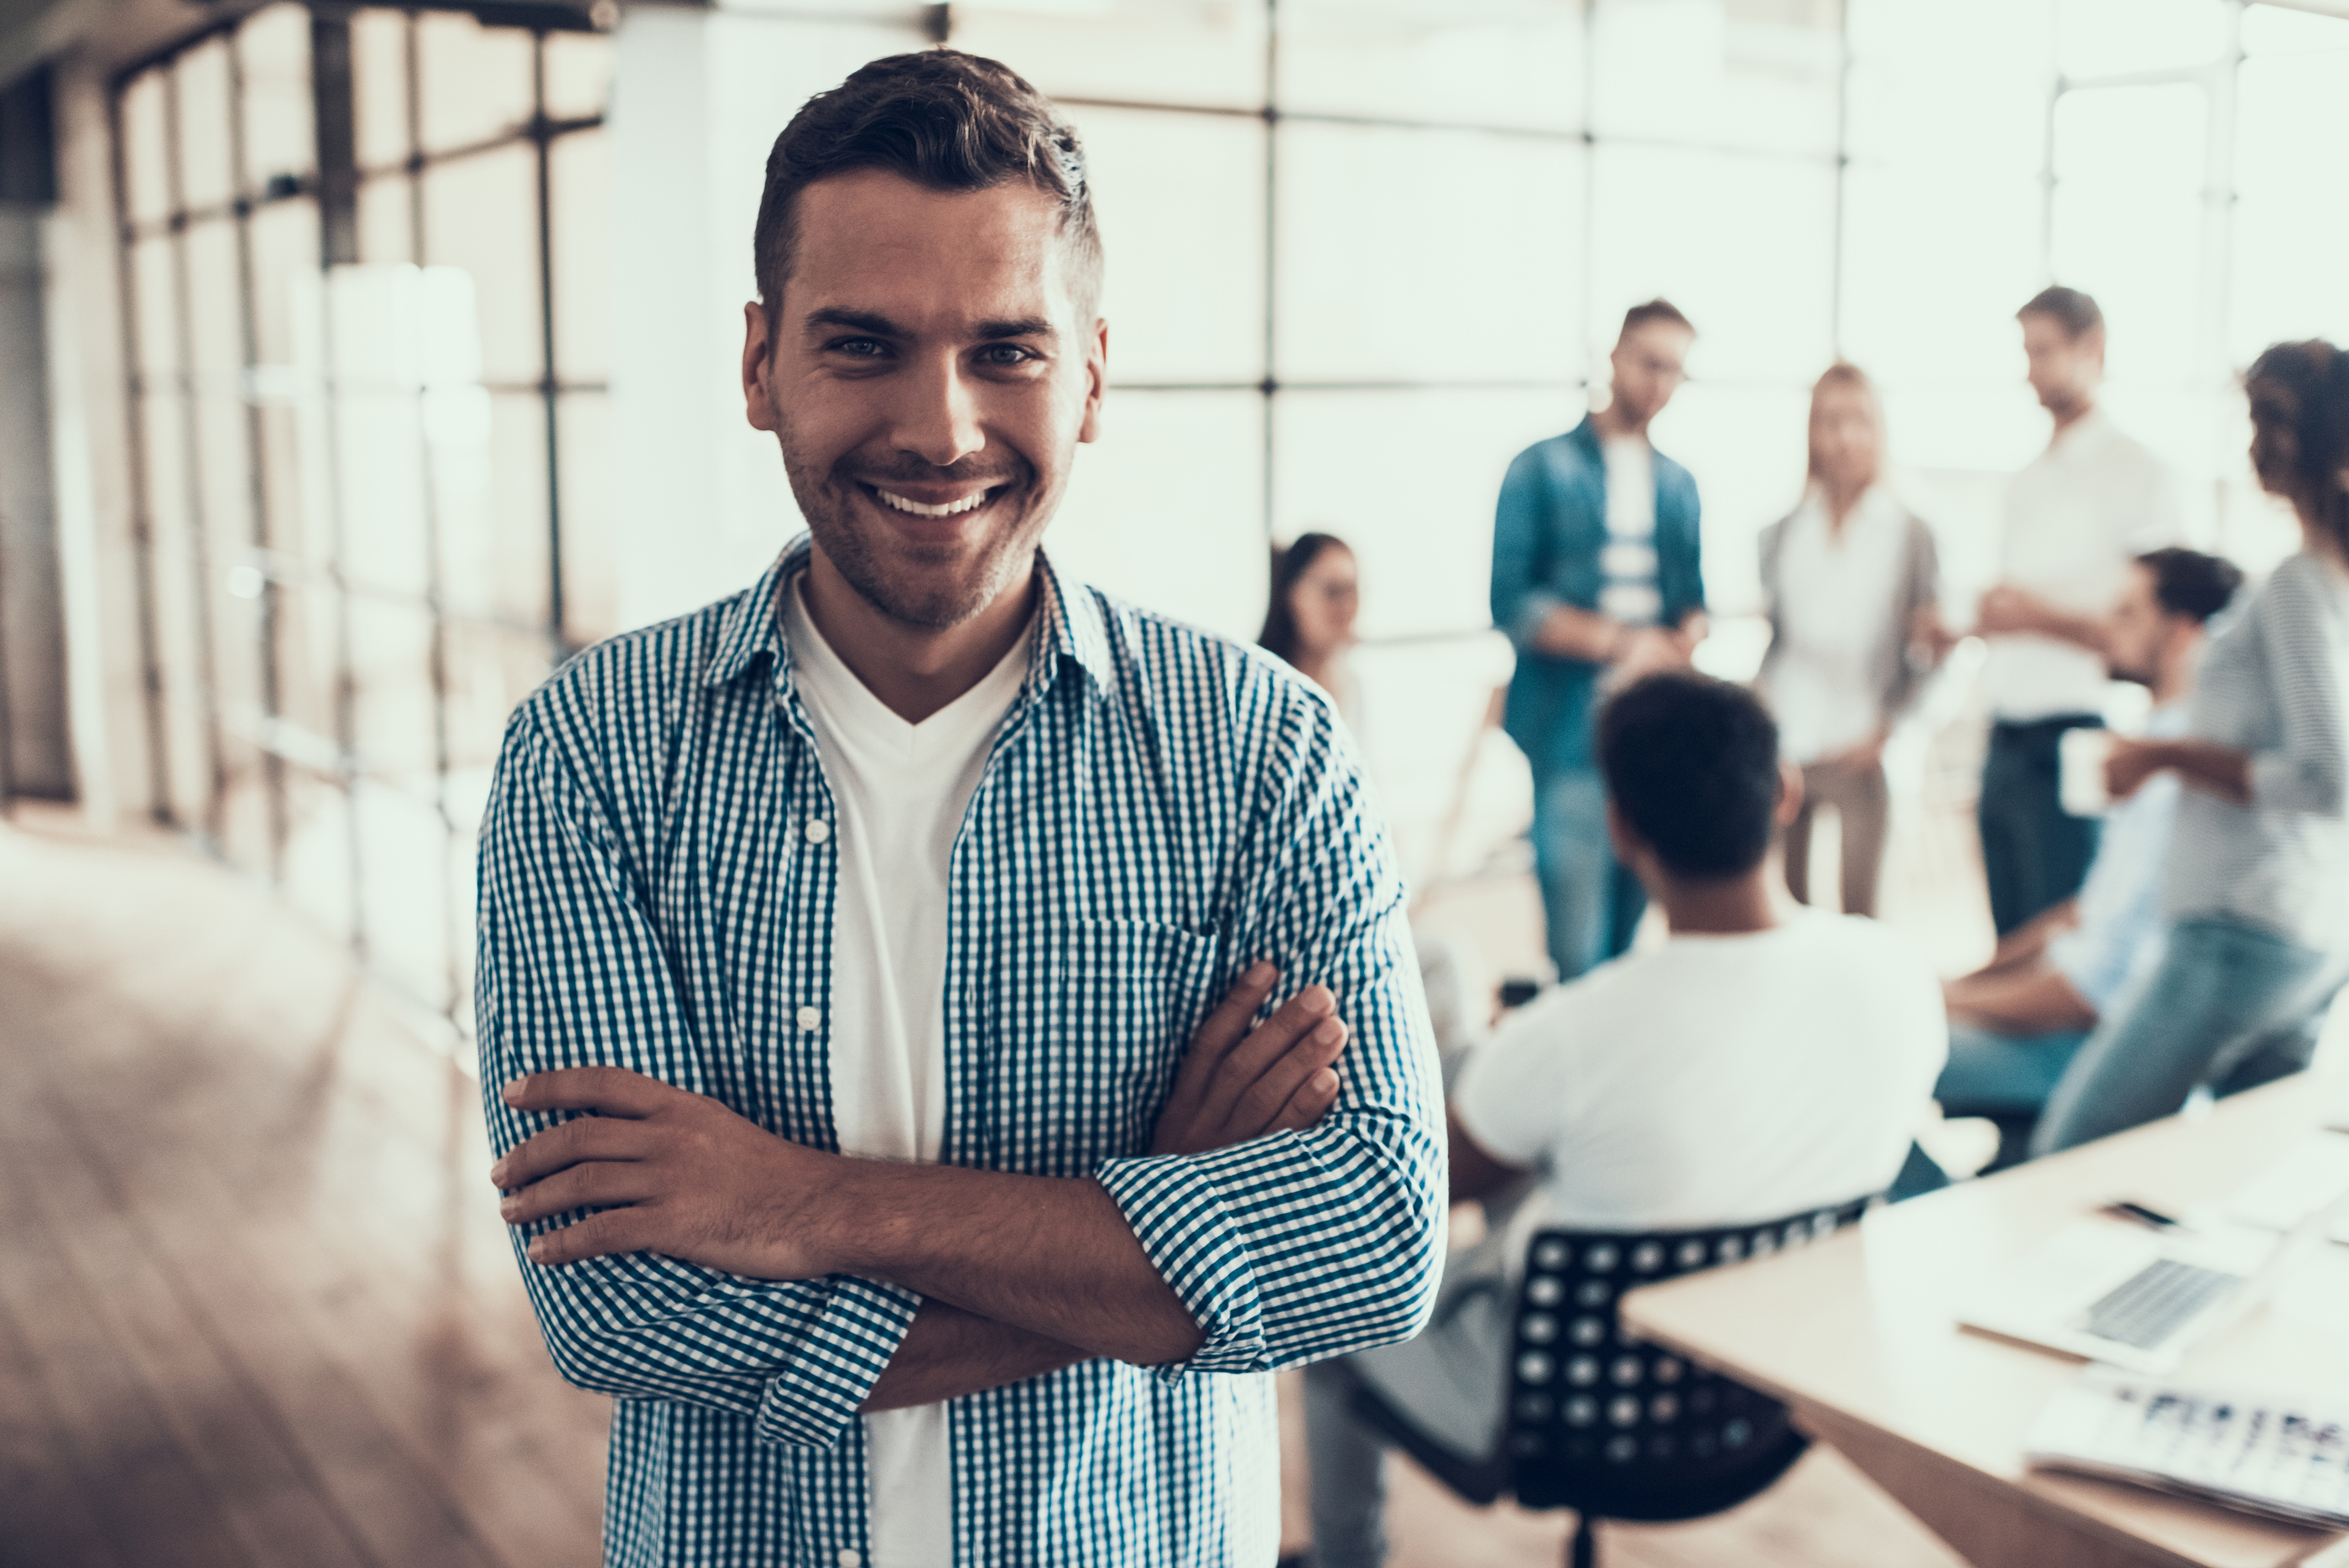 6 Top Health Insurance Tips for Small-Business Owners